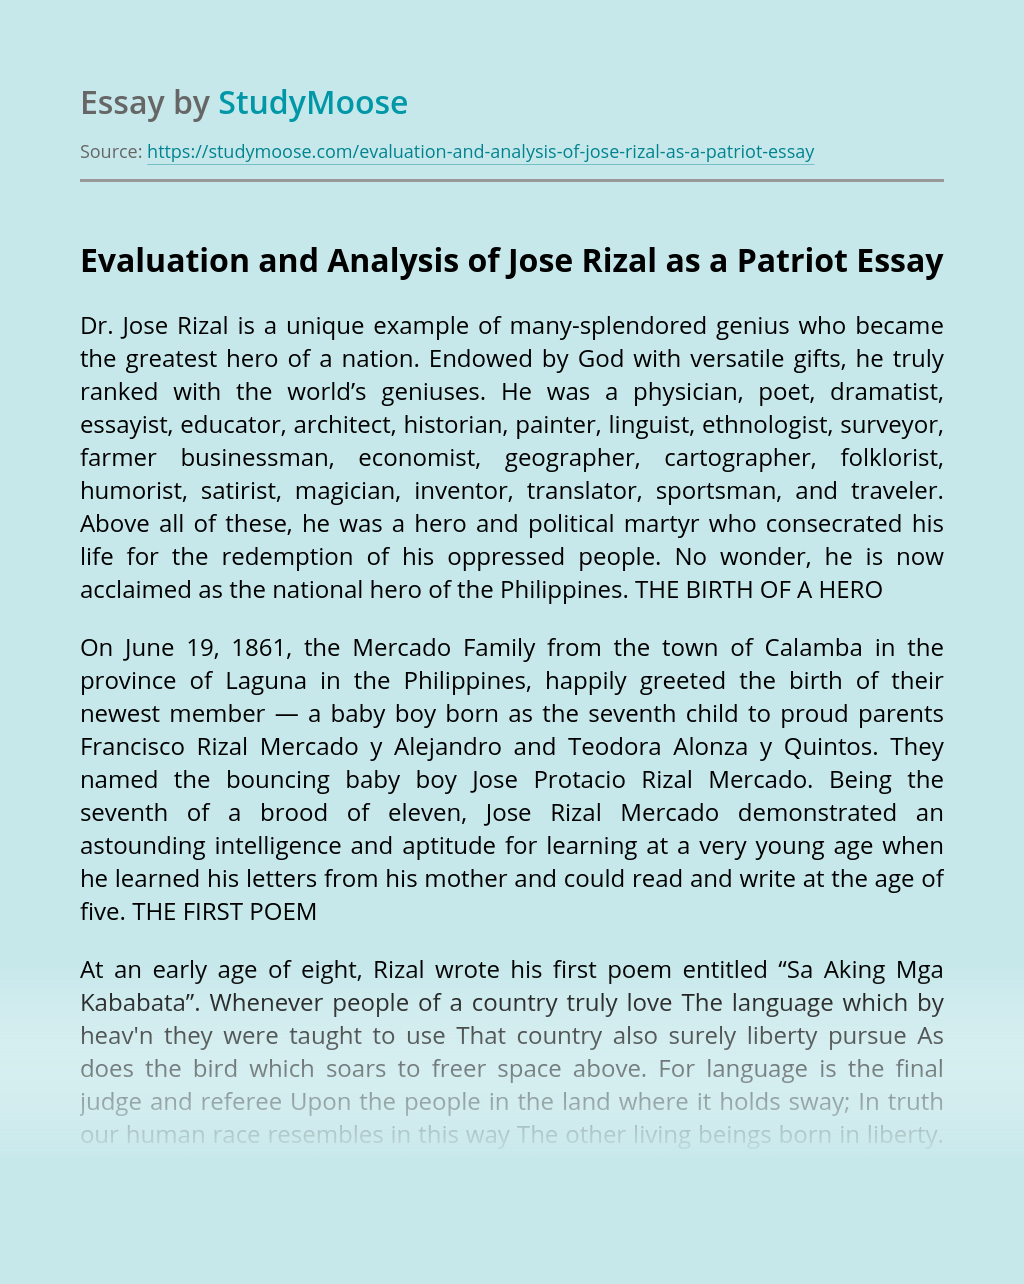 Evaluation and Analysis of Jose Rizal as a Patriot